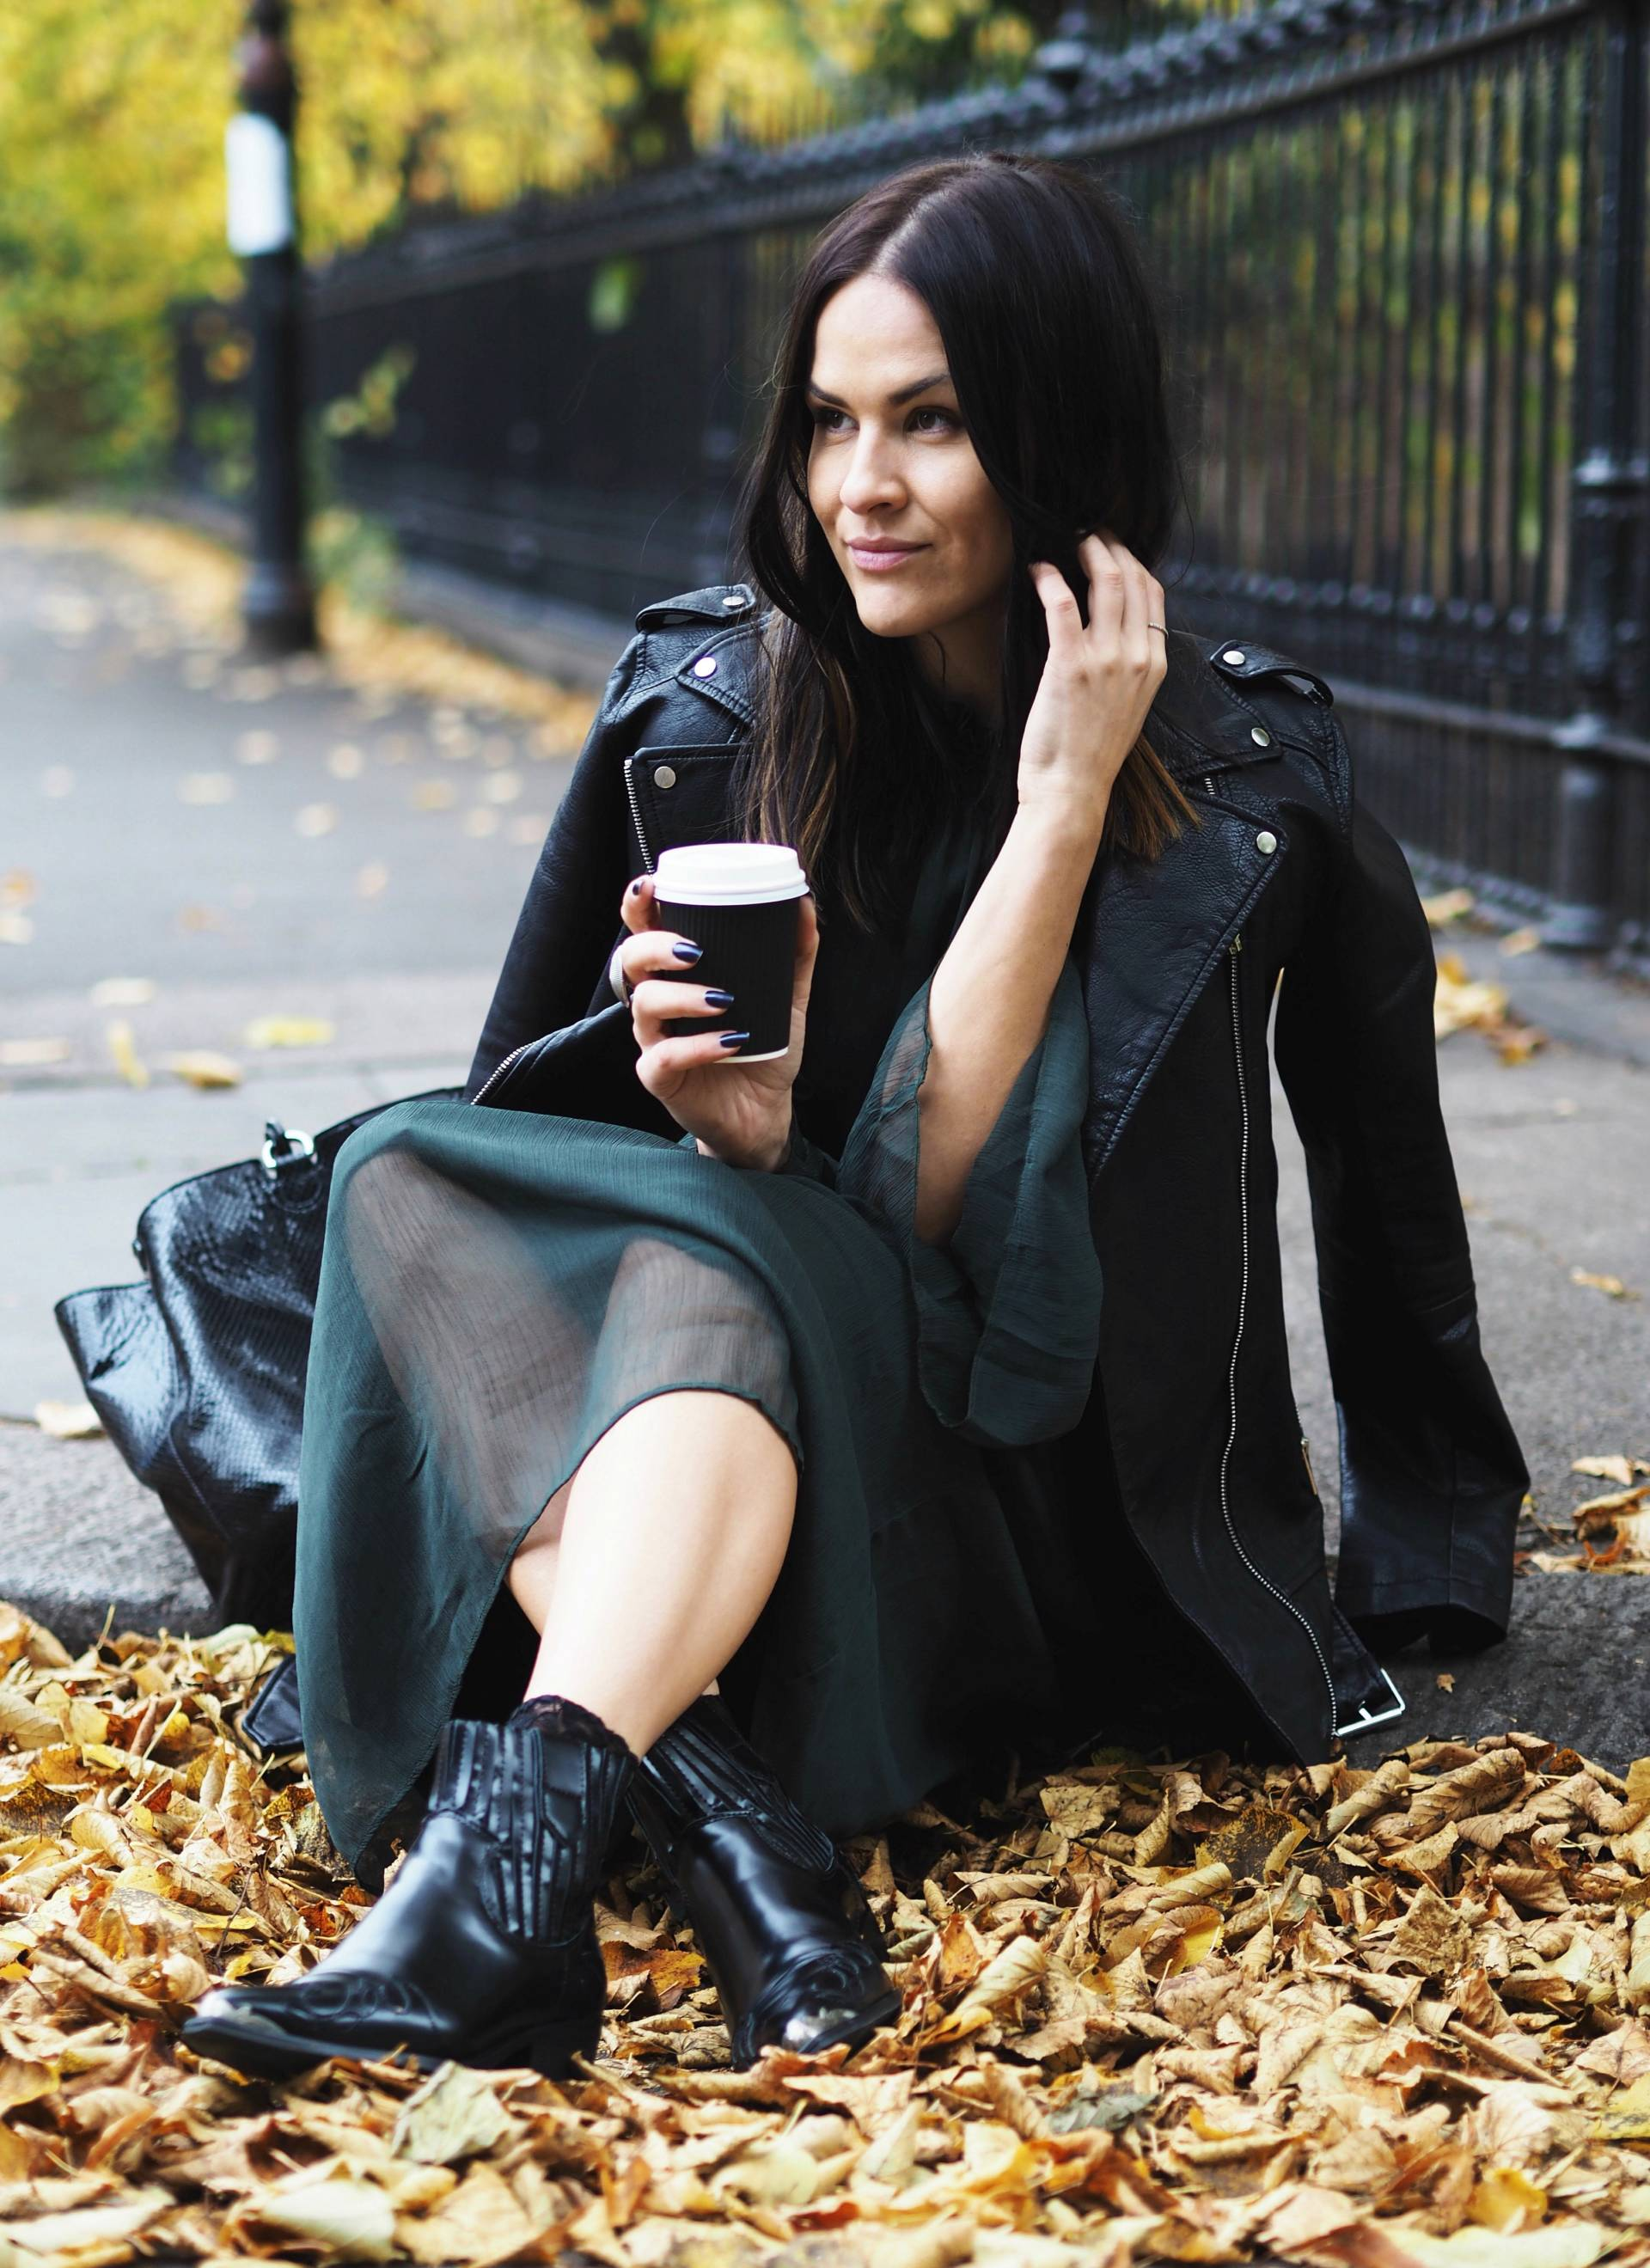 Buy Autumn for Fashion pictures pictures trends